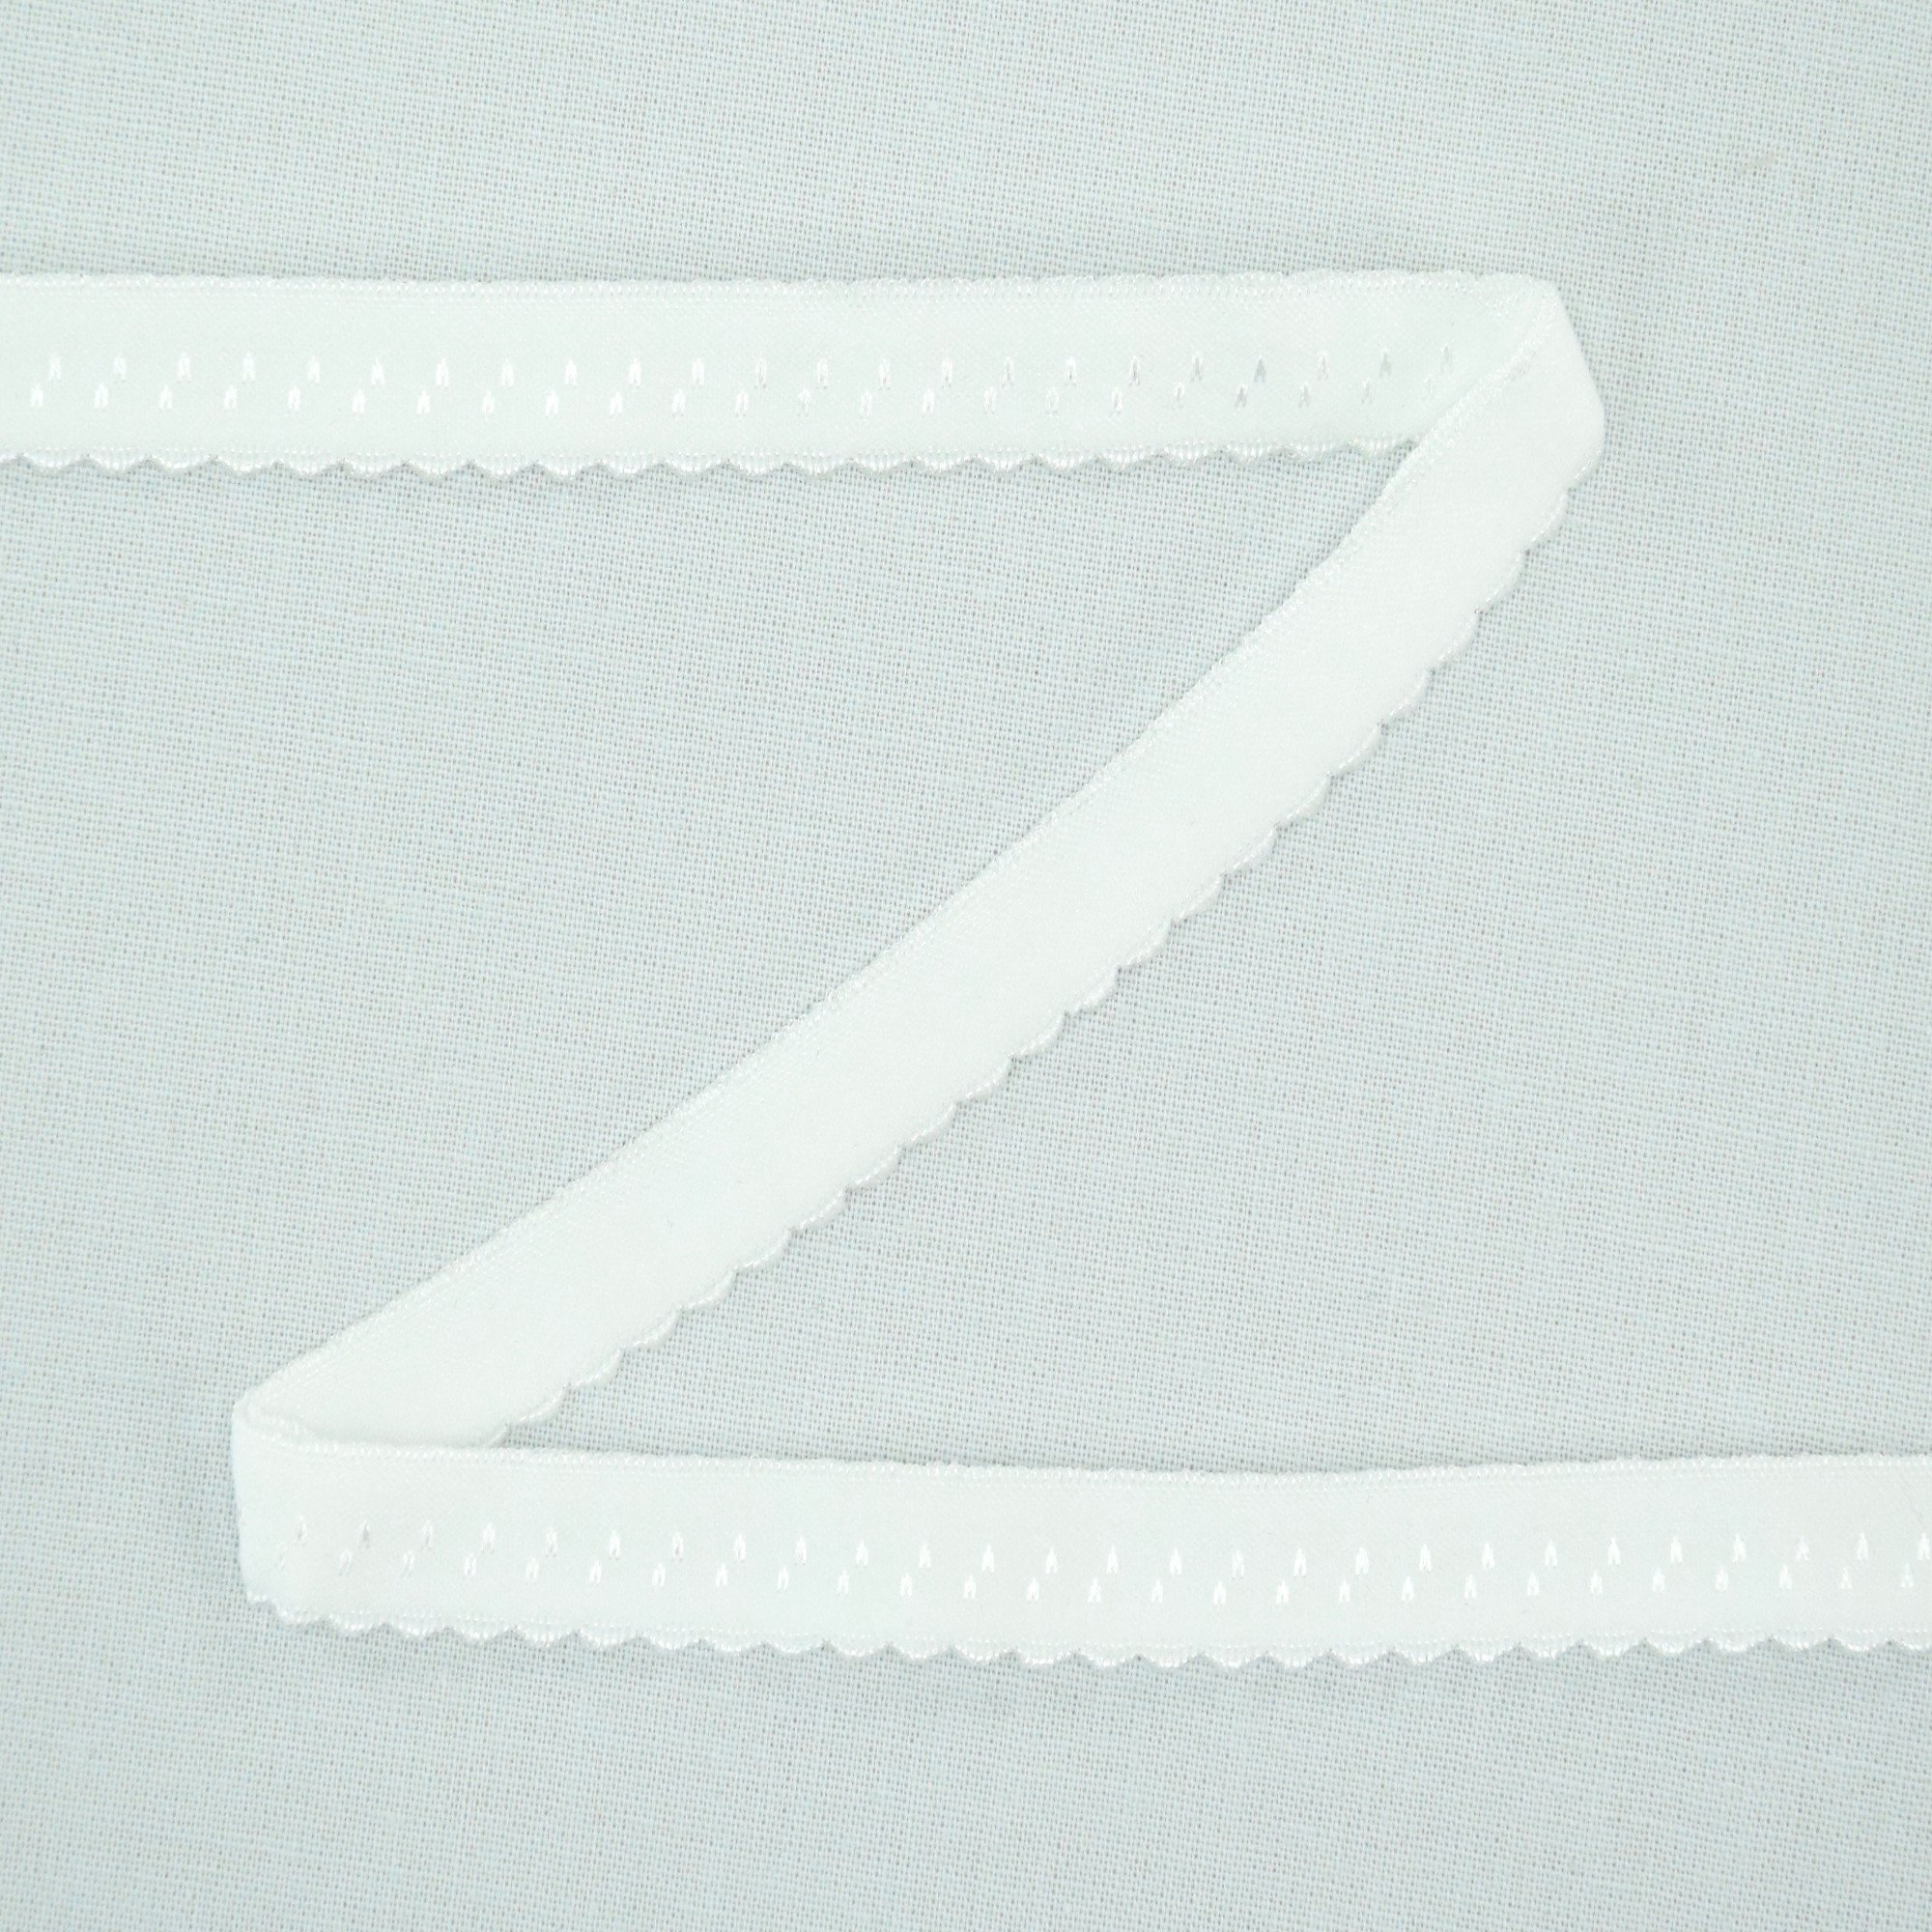 Elastic Lace Edging, off-white 12 mm